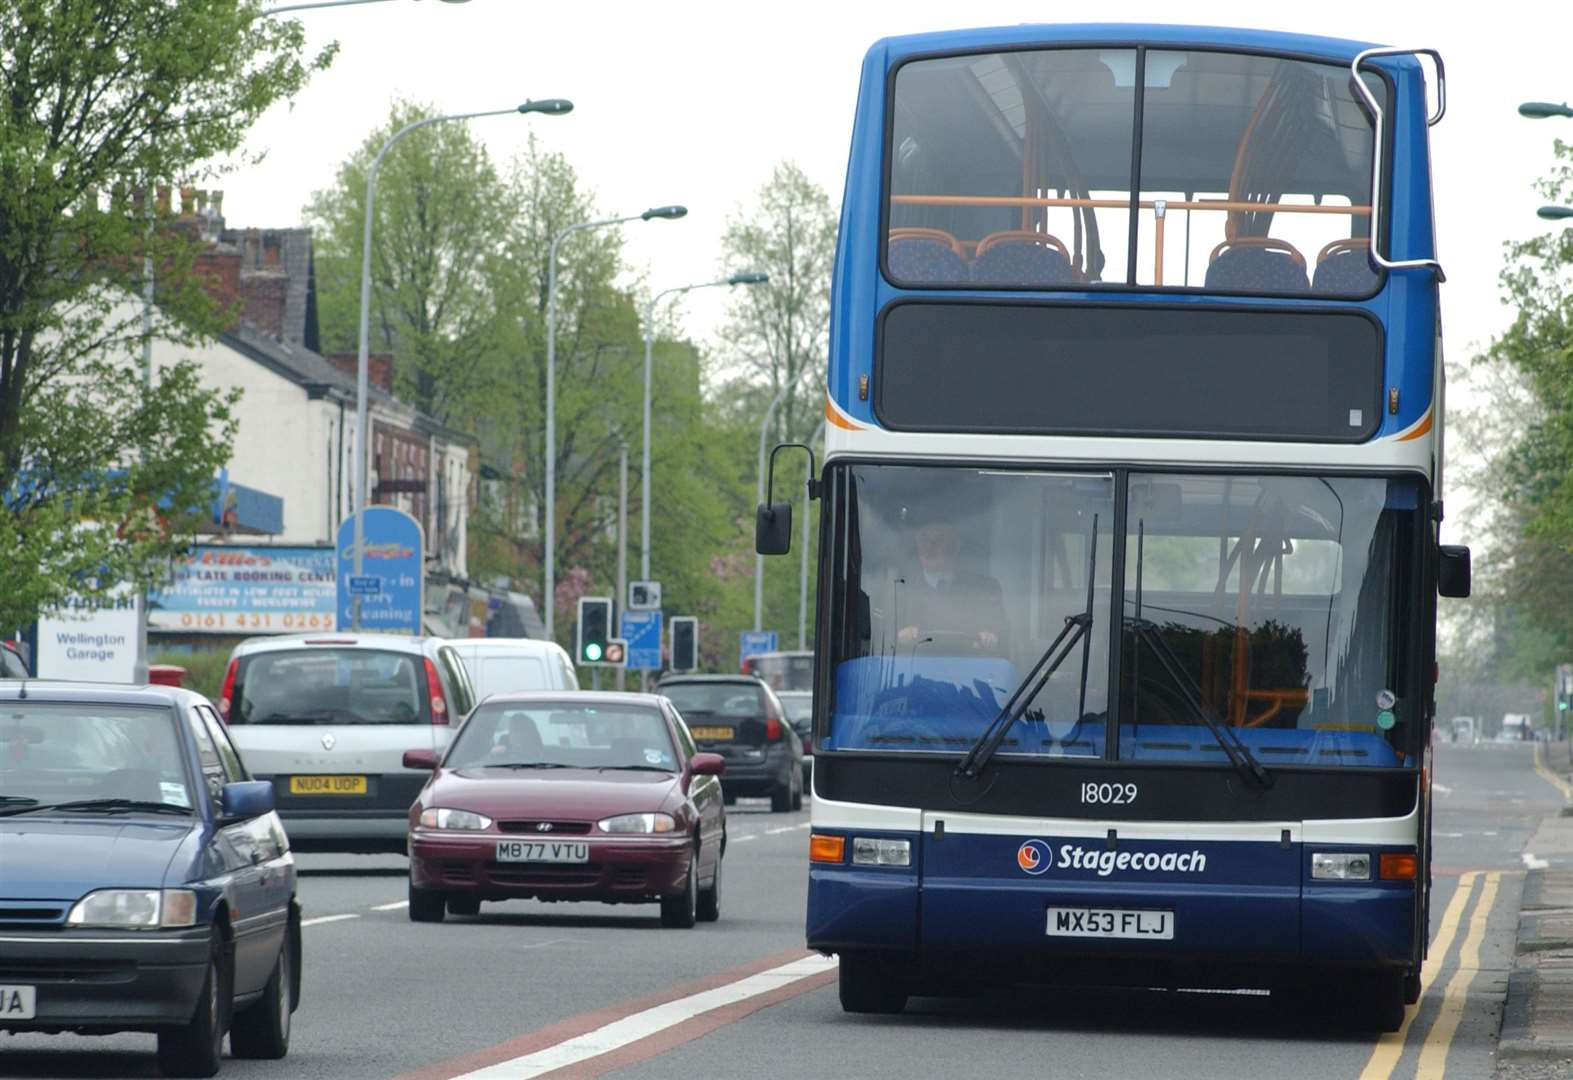 Call for upgrade of bus services to 'let down' villages surrounding Newmarket